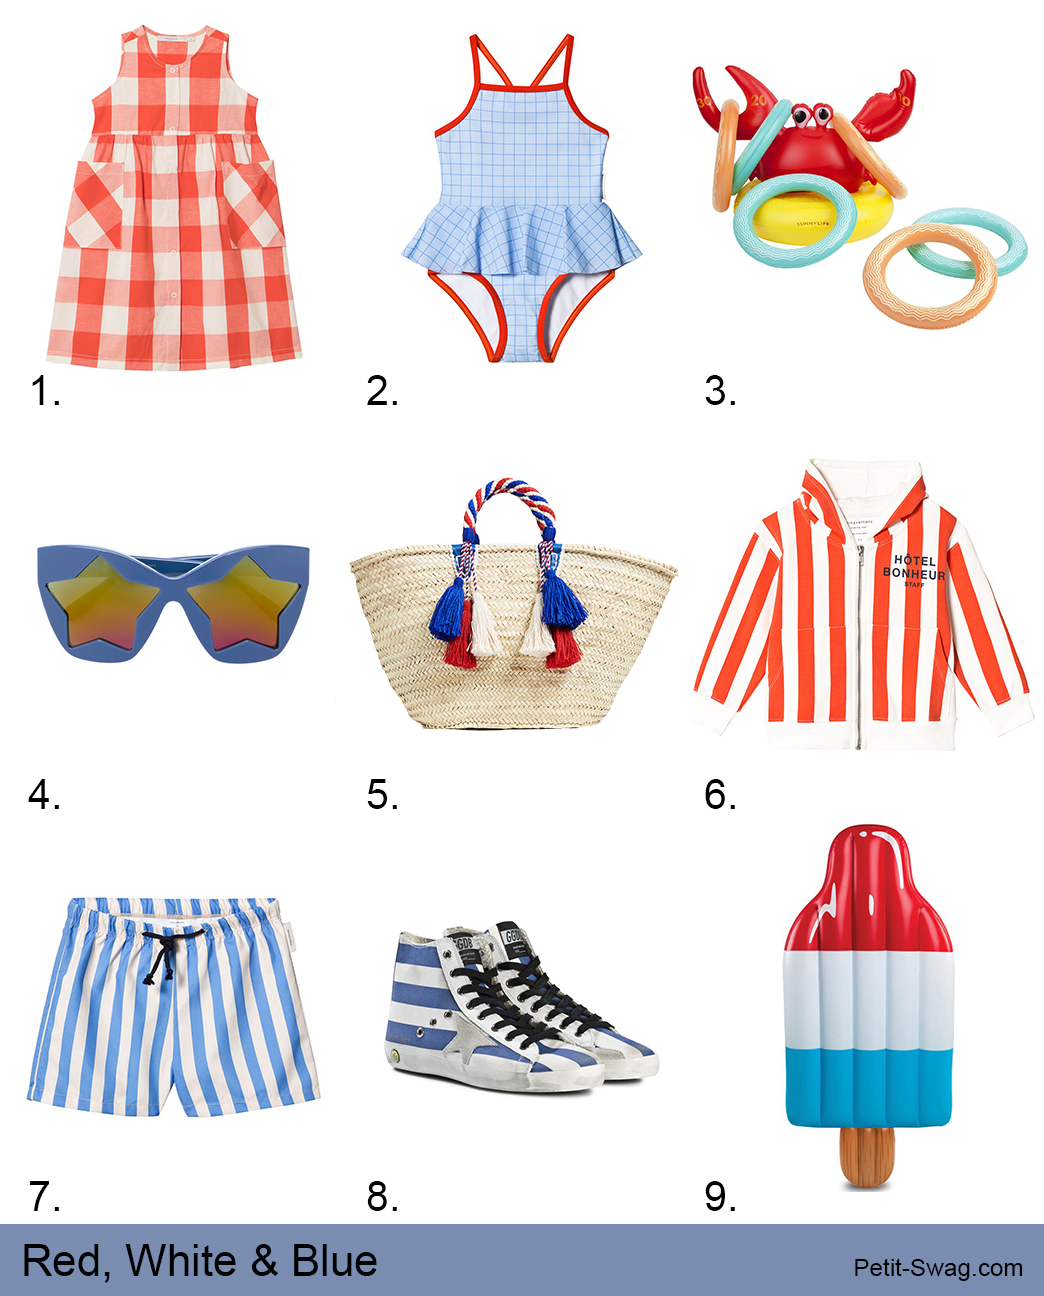 Red, White & Blue | petit-swag.com